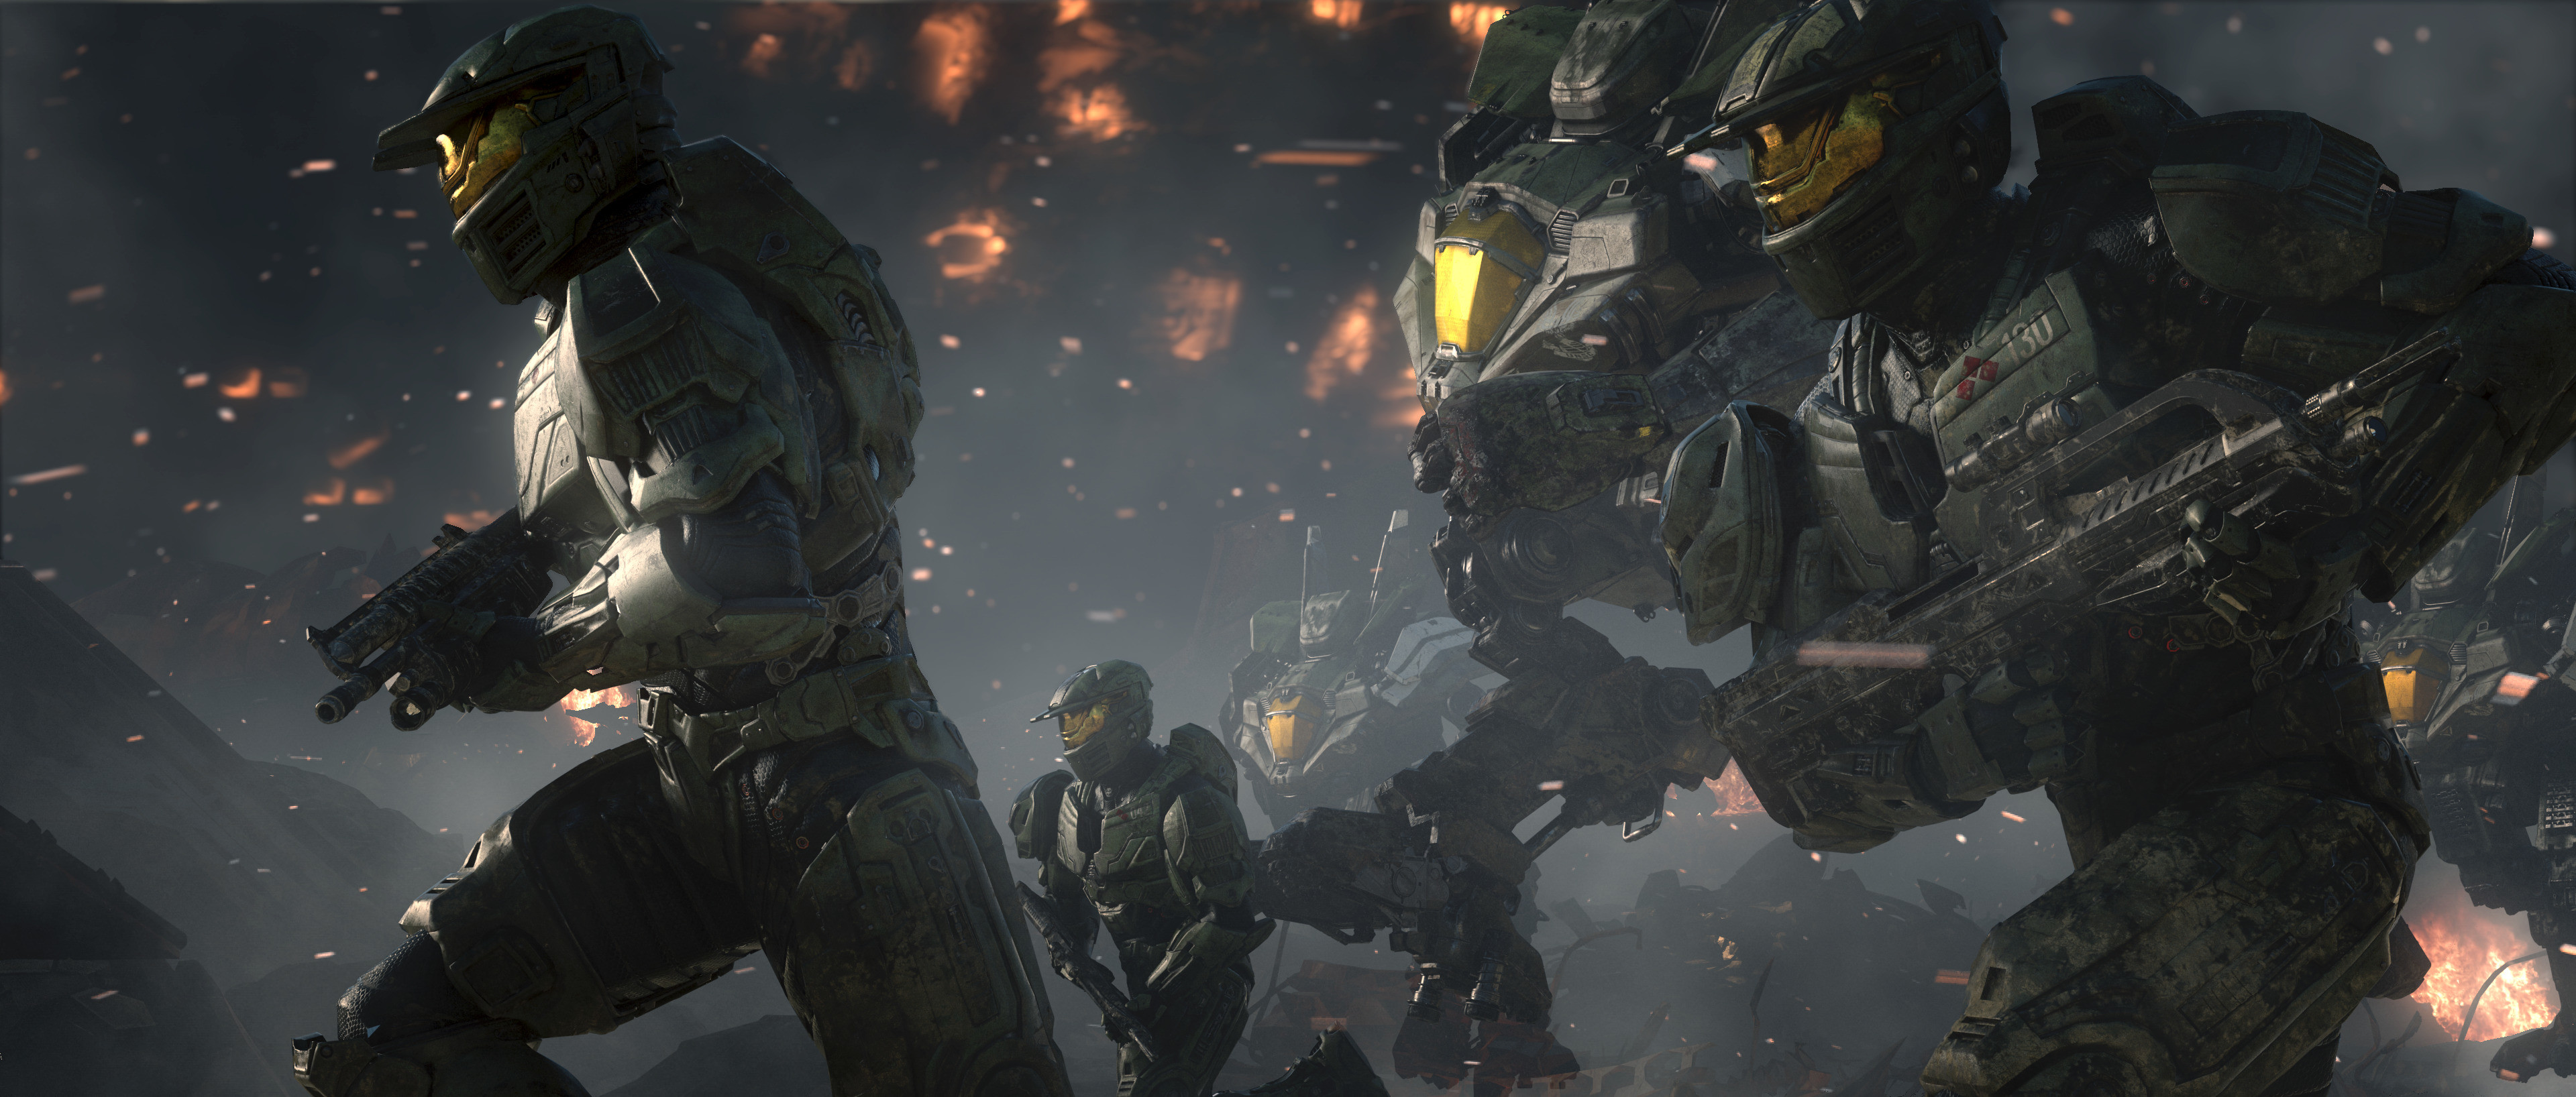 Res: 3840x1636, spartans halo wars wallpaper and background